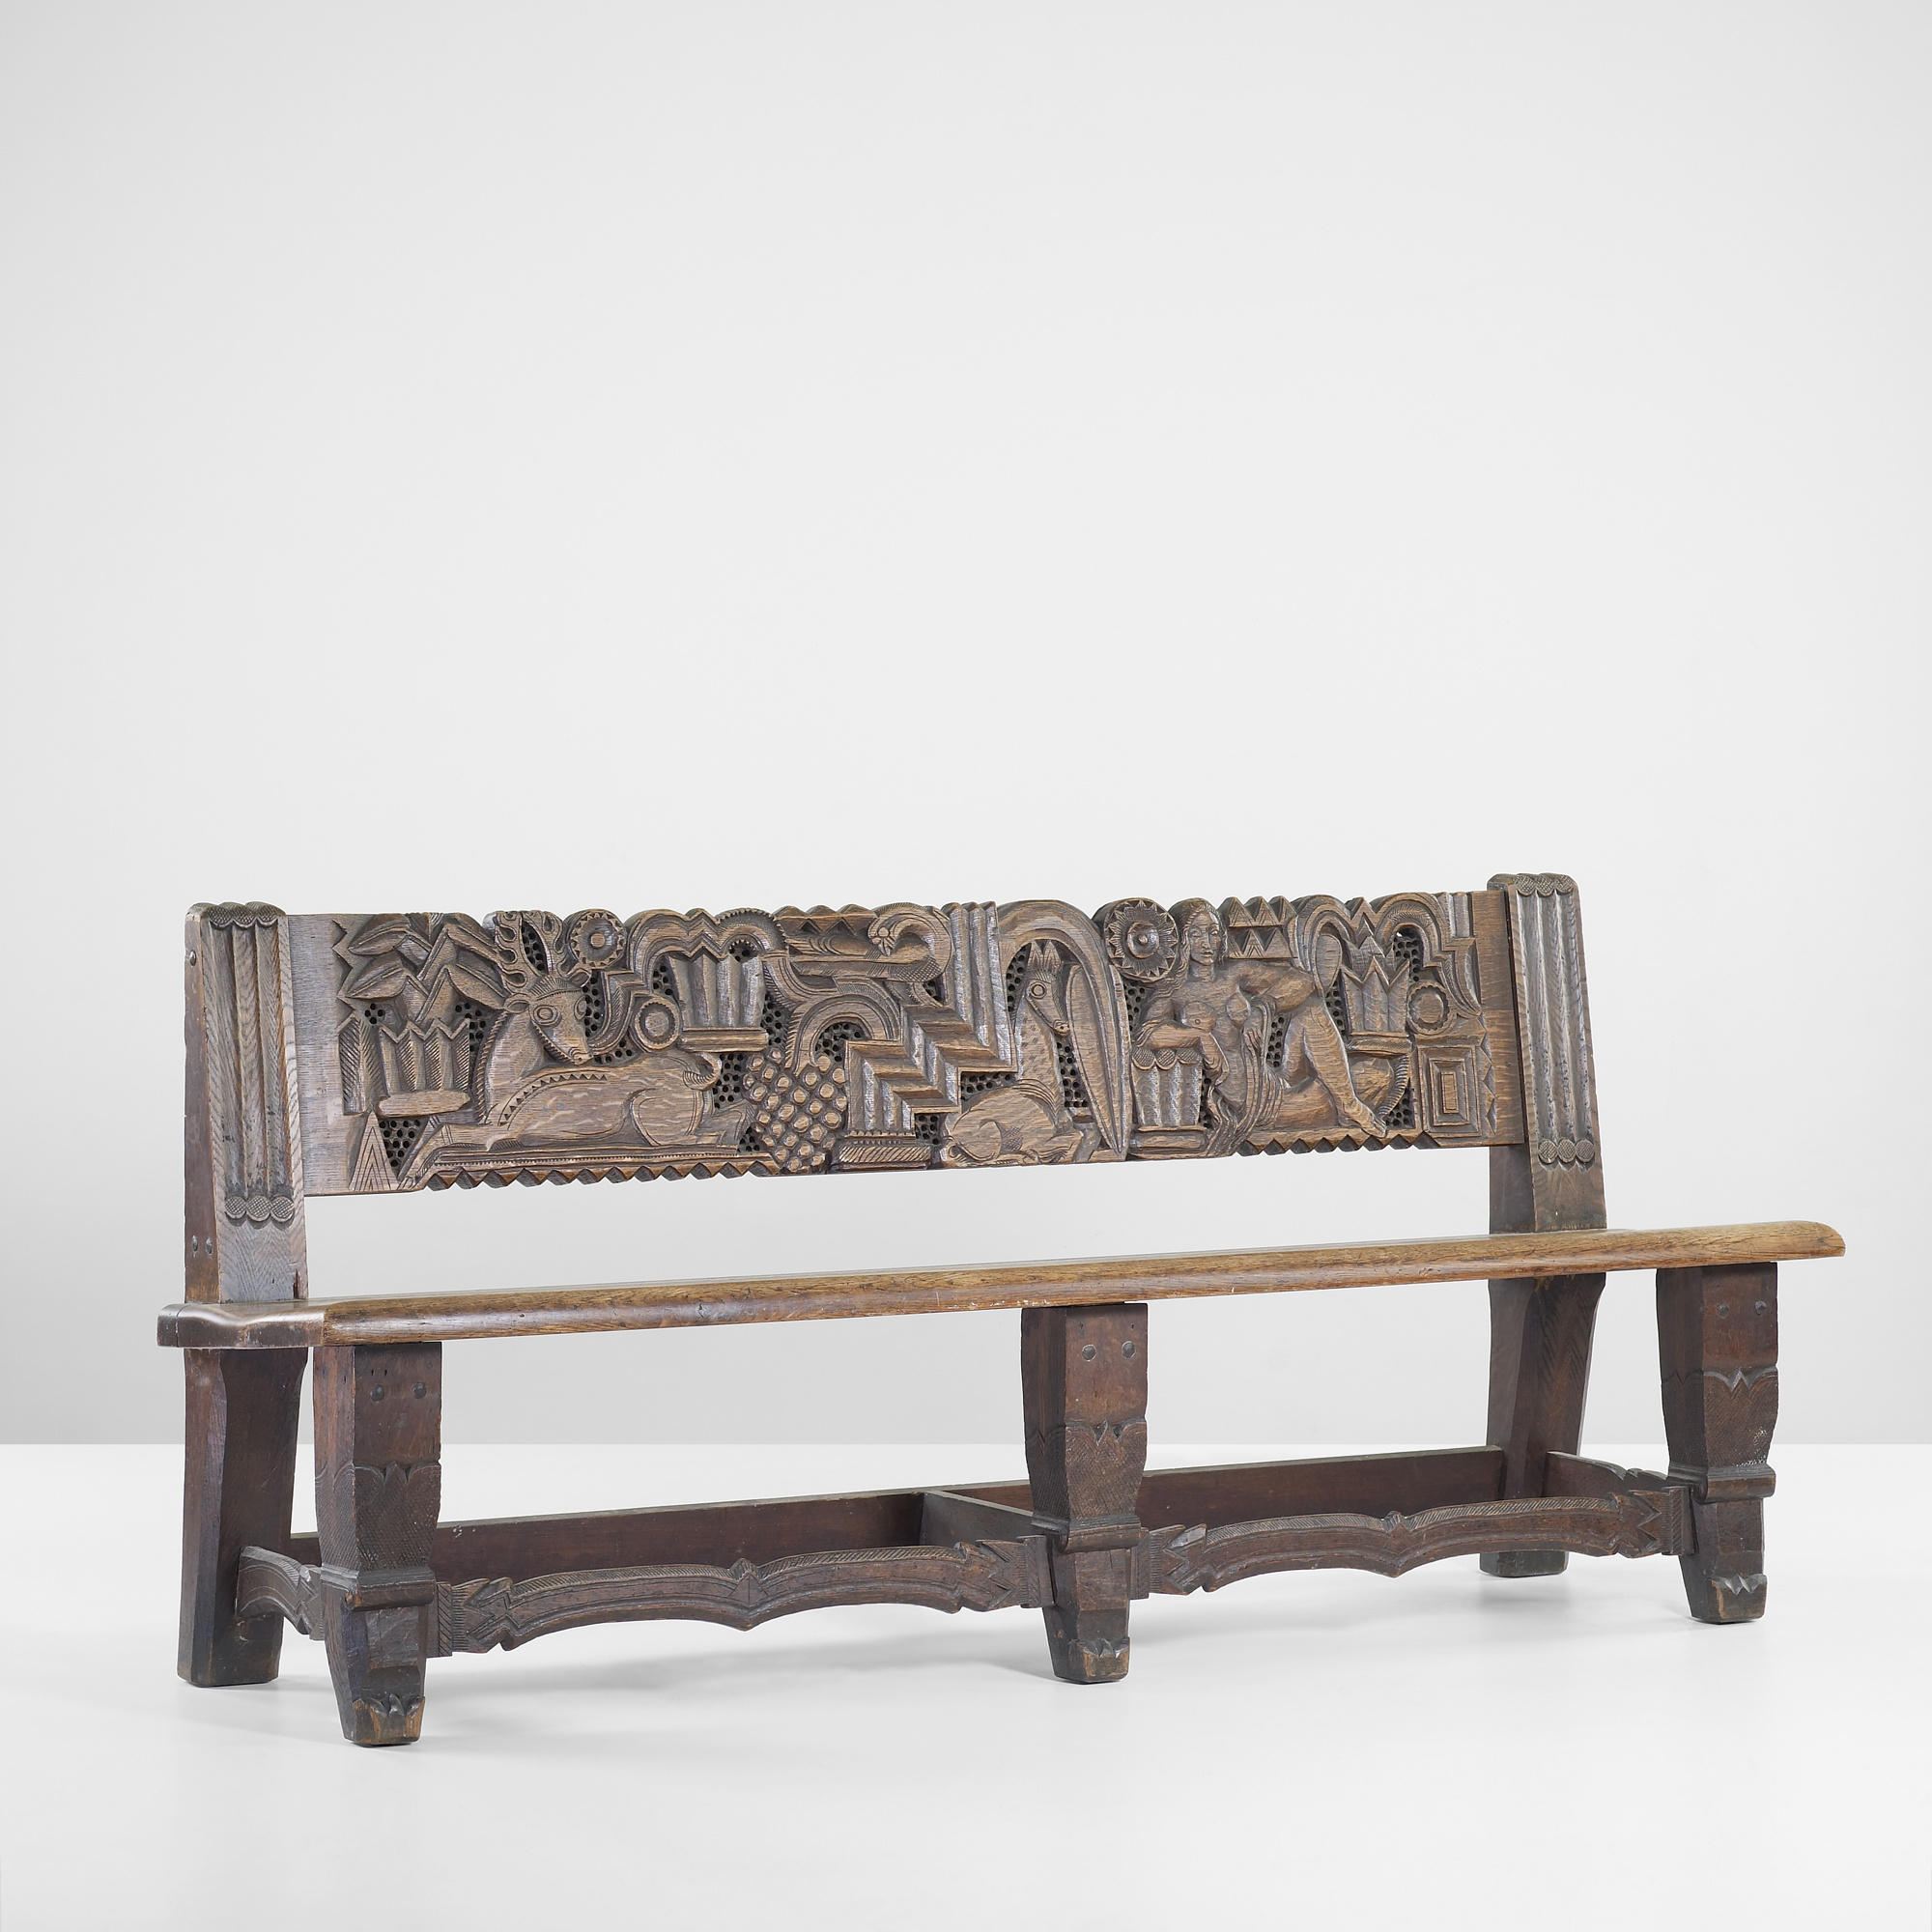 258 Edgar Miller Bench From The Normandy House Chicago Important Design 9 June 2011 Auctions Wright Auctions Of Art And Design